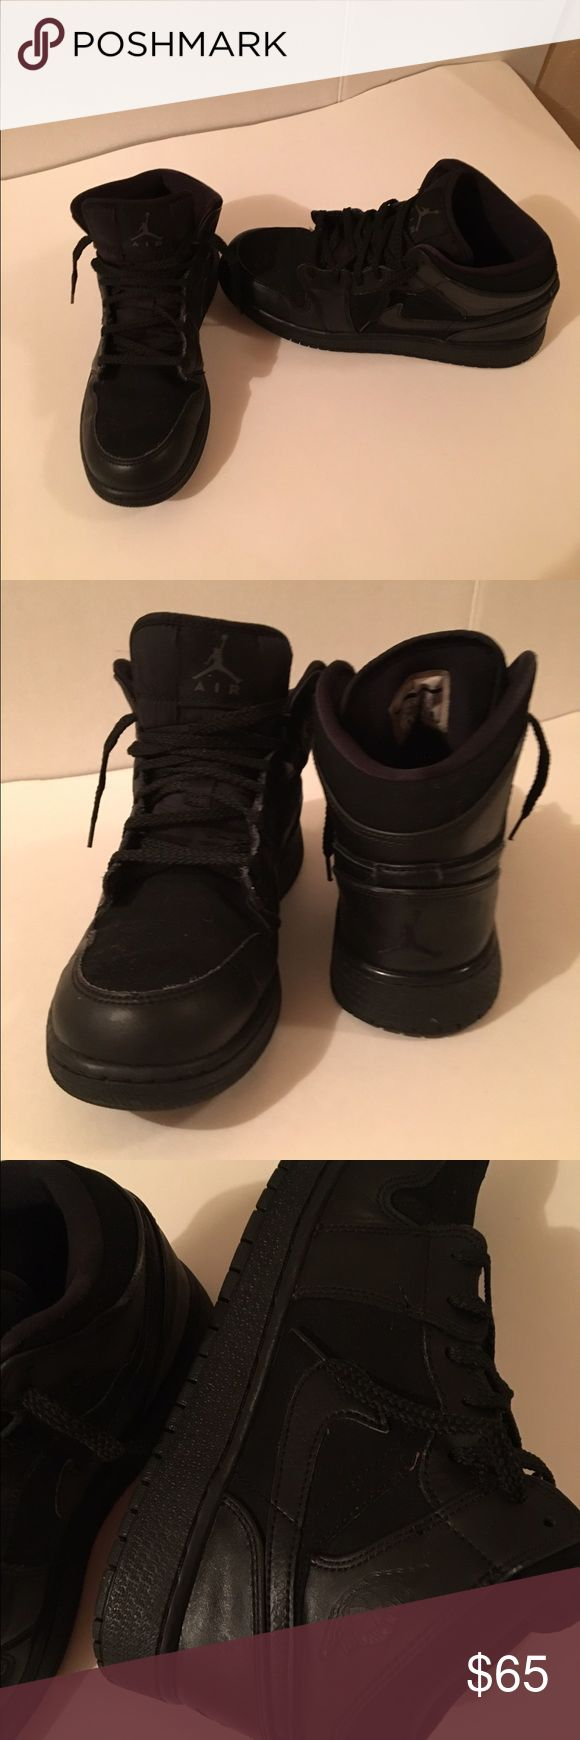 Air Jordan 1 Mid (GS) Black All black Air Jordans. The shoe features nubuck (like  suede) and leather upper for durable comfort and style. All black in excellent condition. Size 6.5Y Jordan Shoes Sneakers